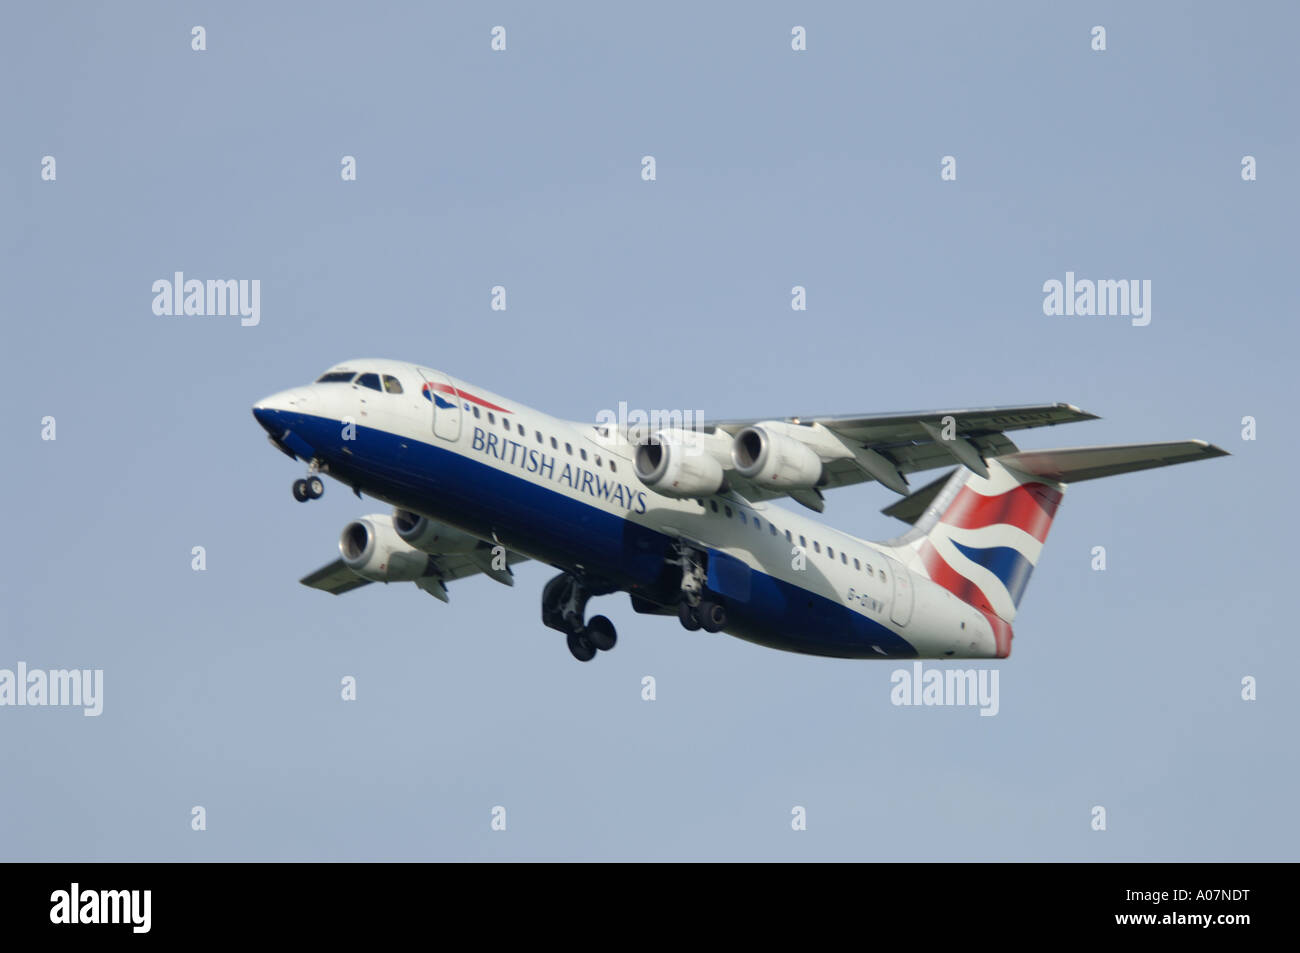 British Airways BAe 146-300 CitiExpress London Bound from Inverness.  XAV 3998-380 - Stock Image